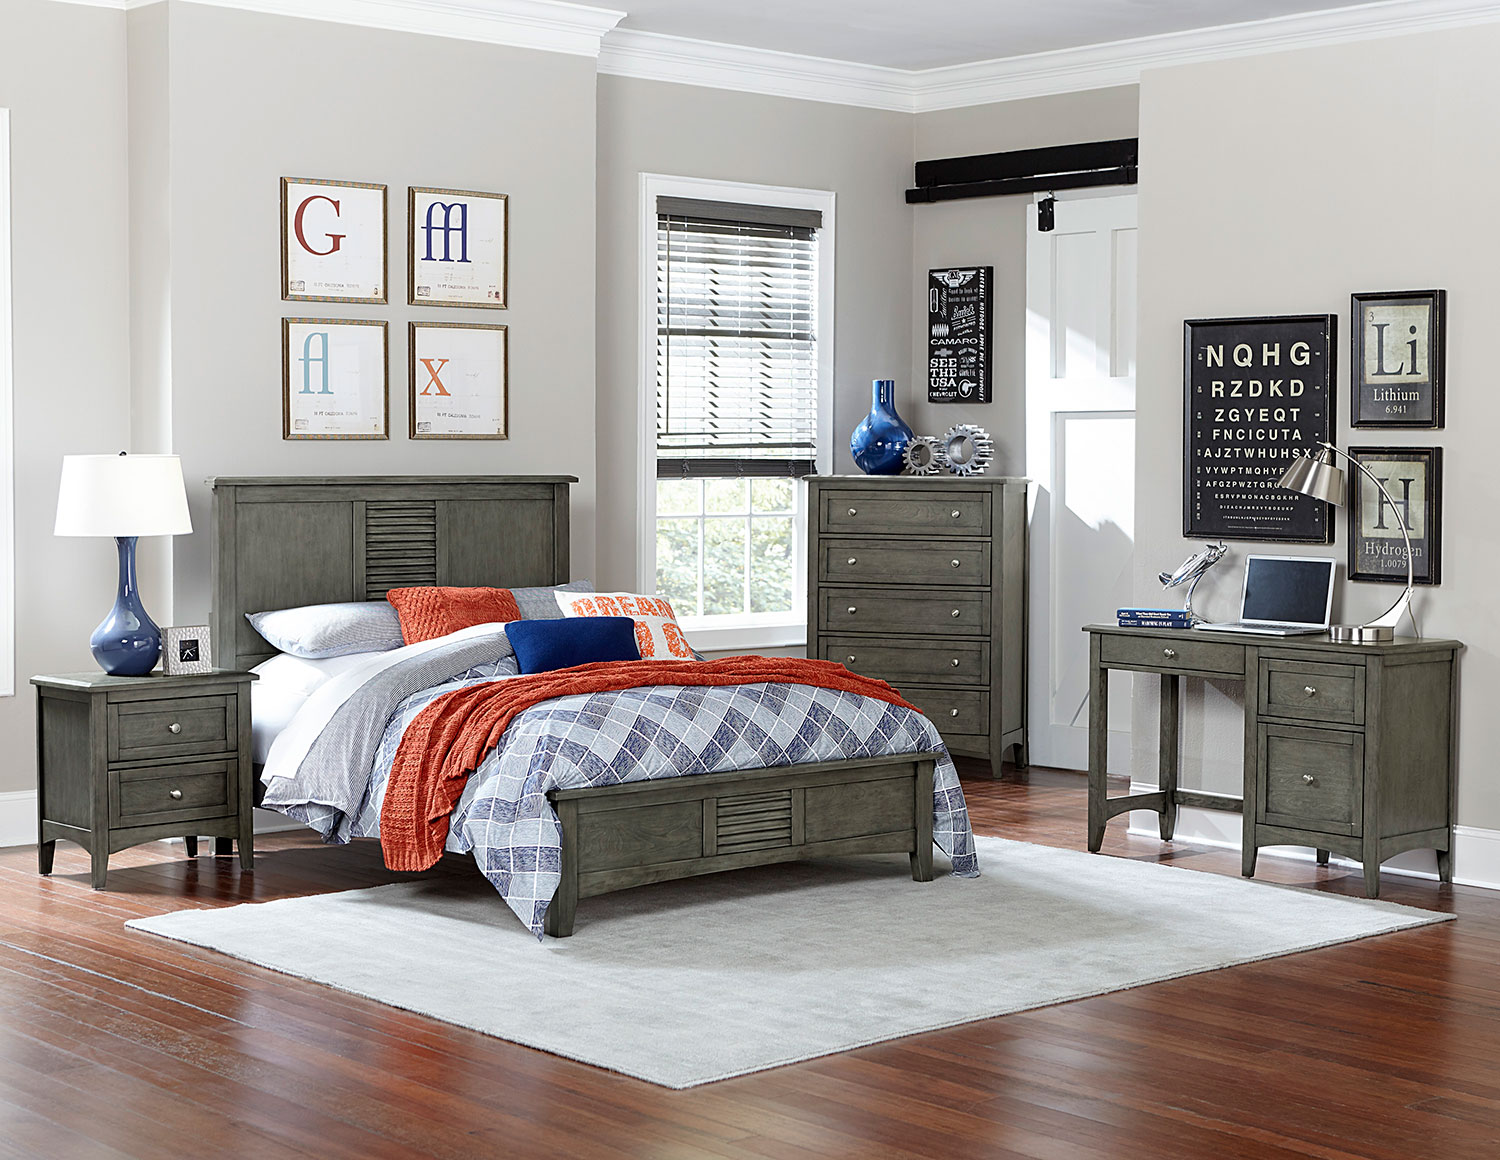 Homelegance Garcia Bedroom Set - Gray